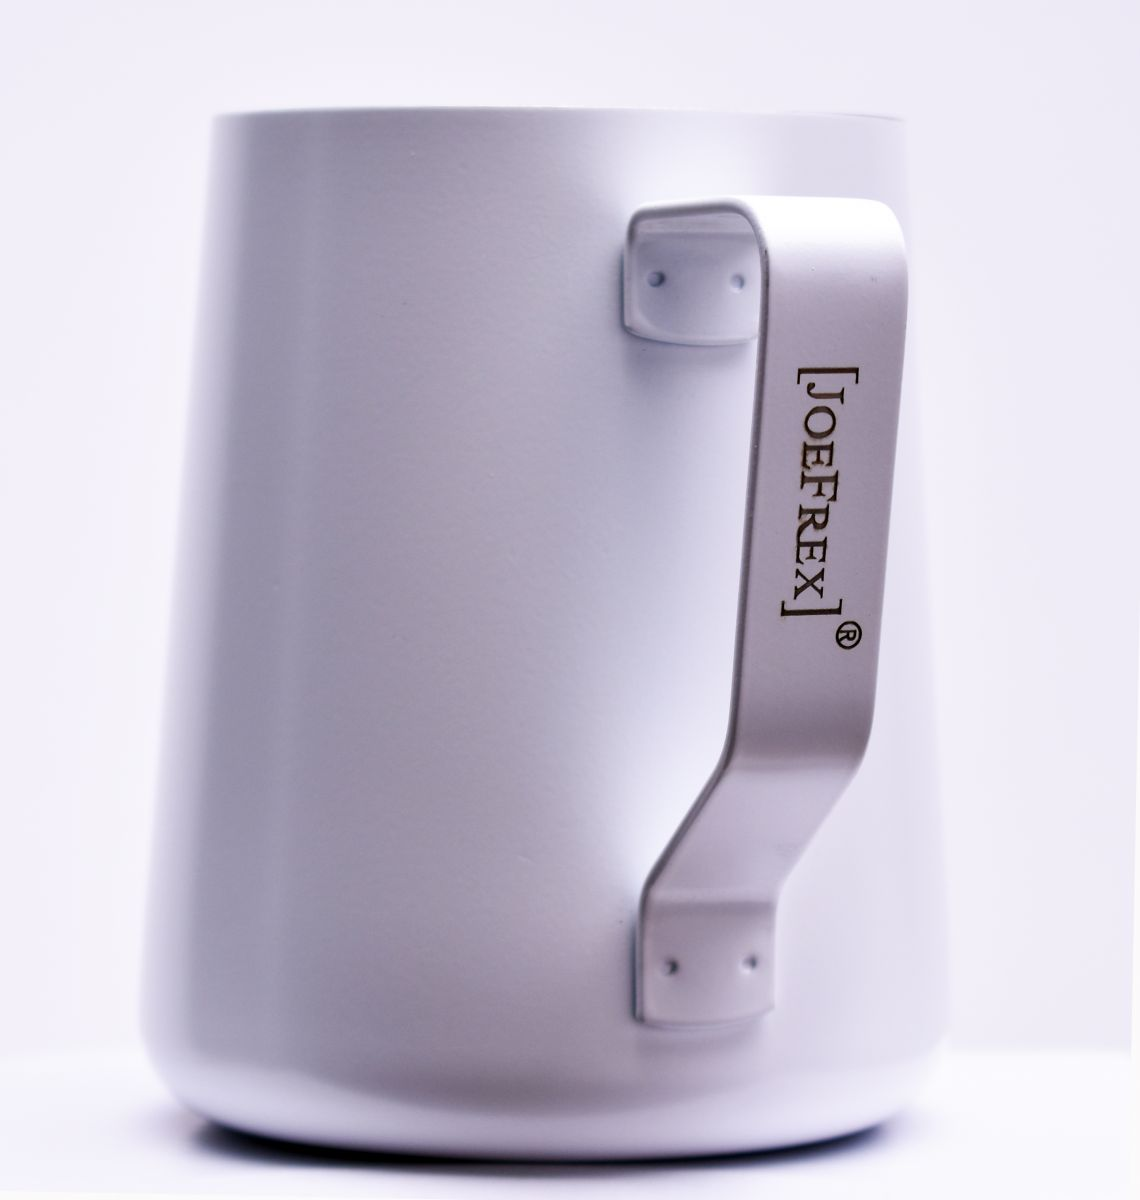 Joe Frex Milk Pitcher powder coated White 350 ml